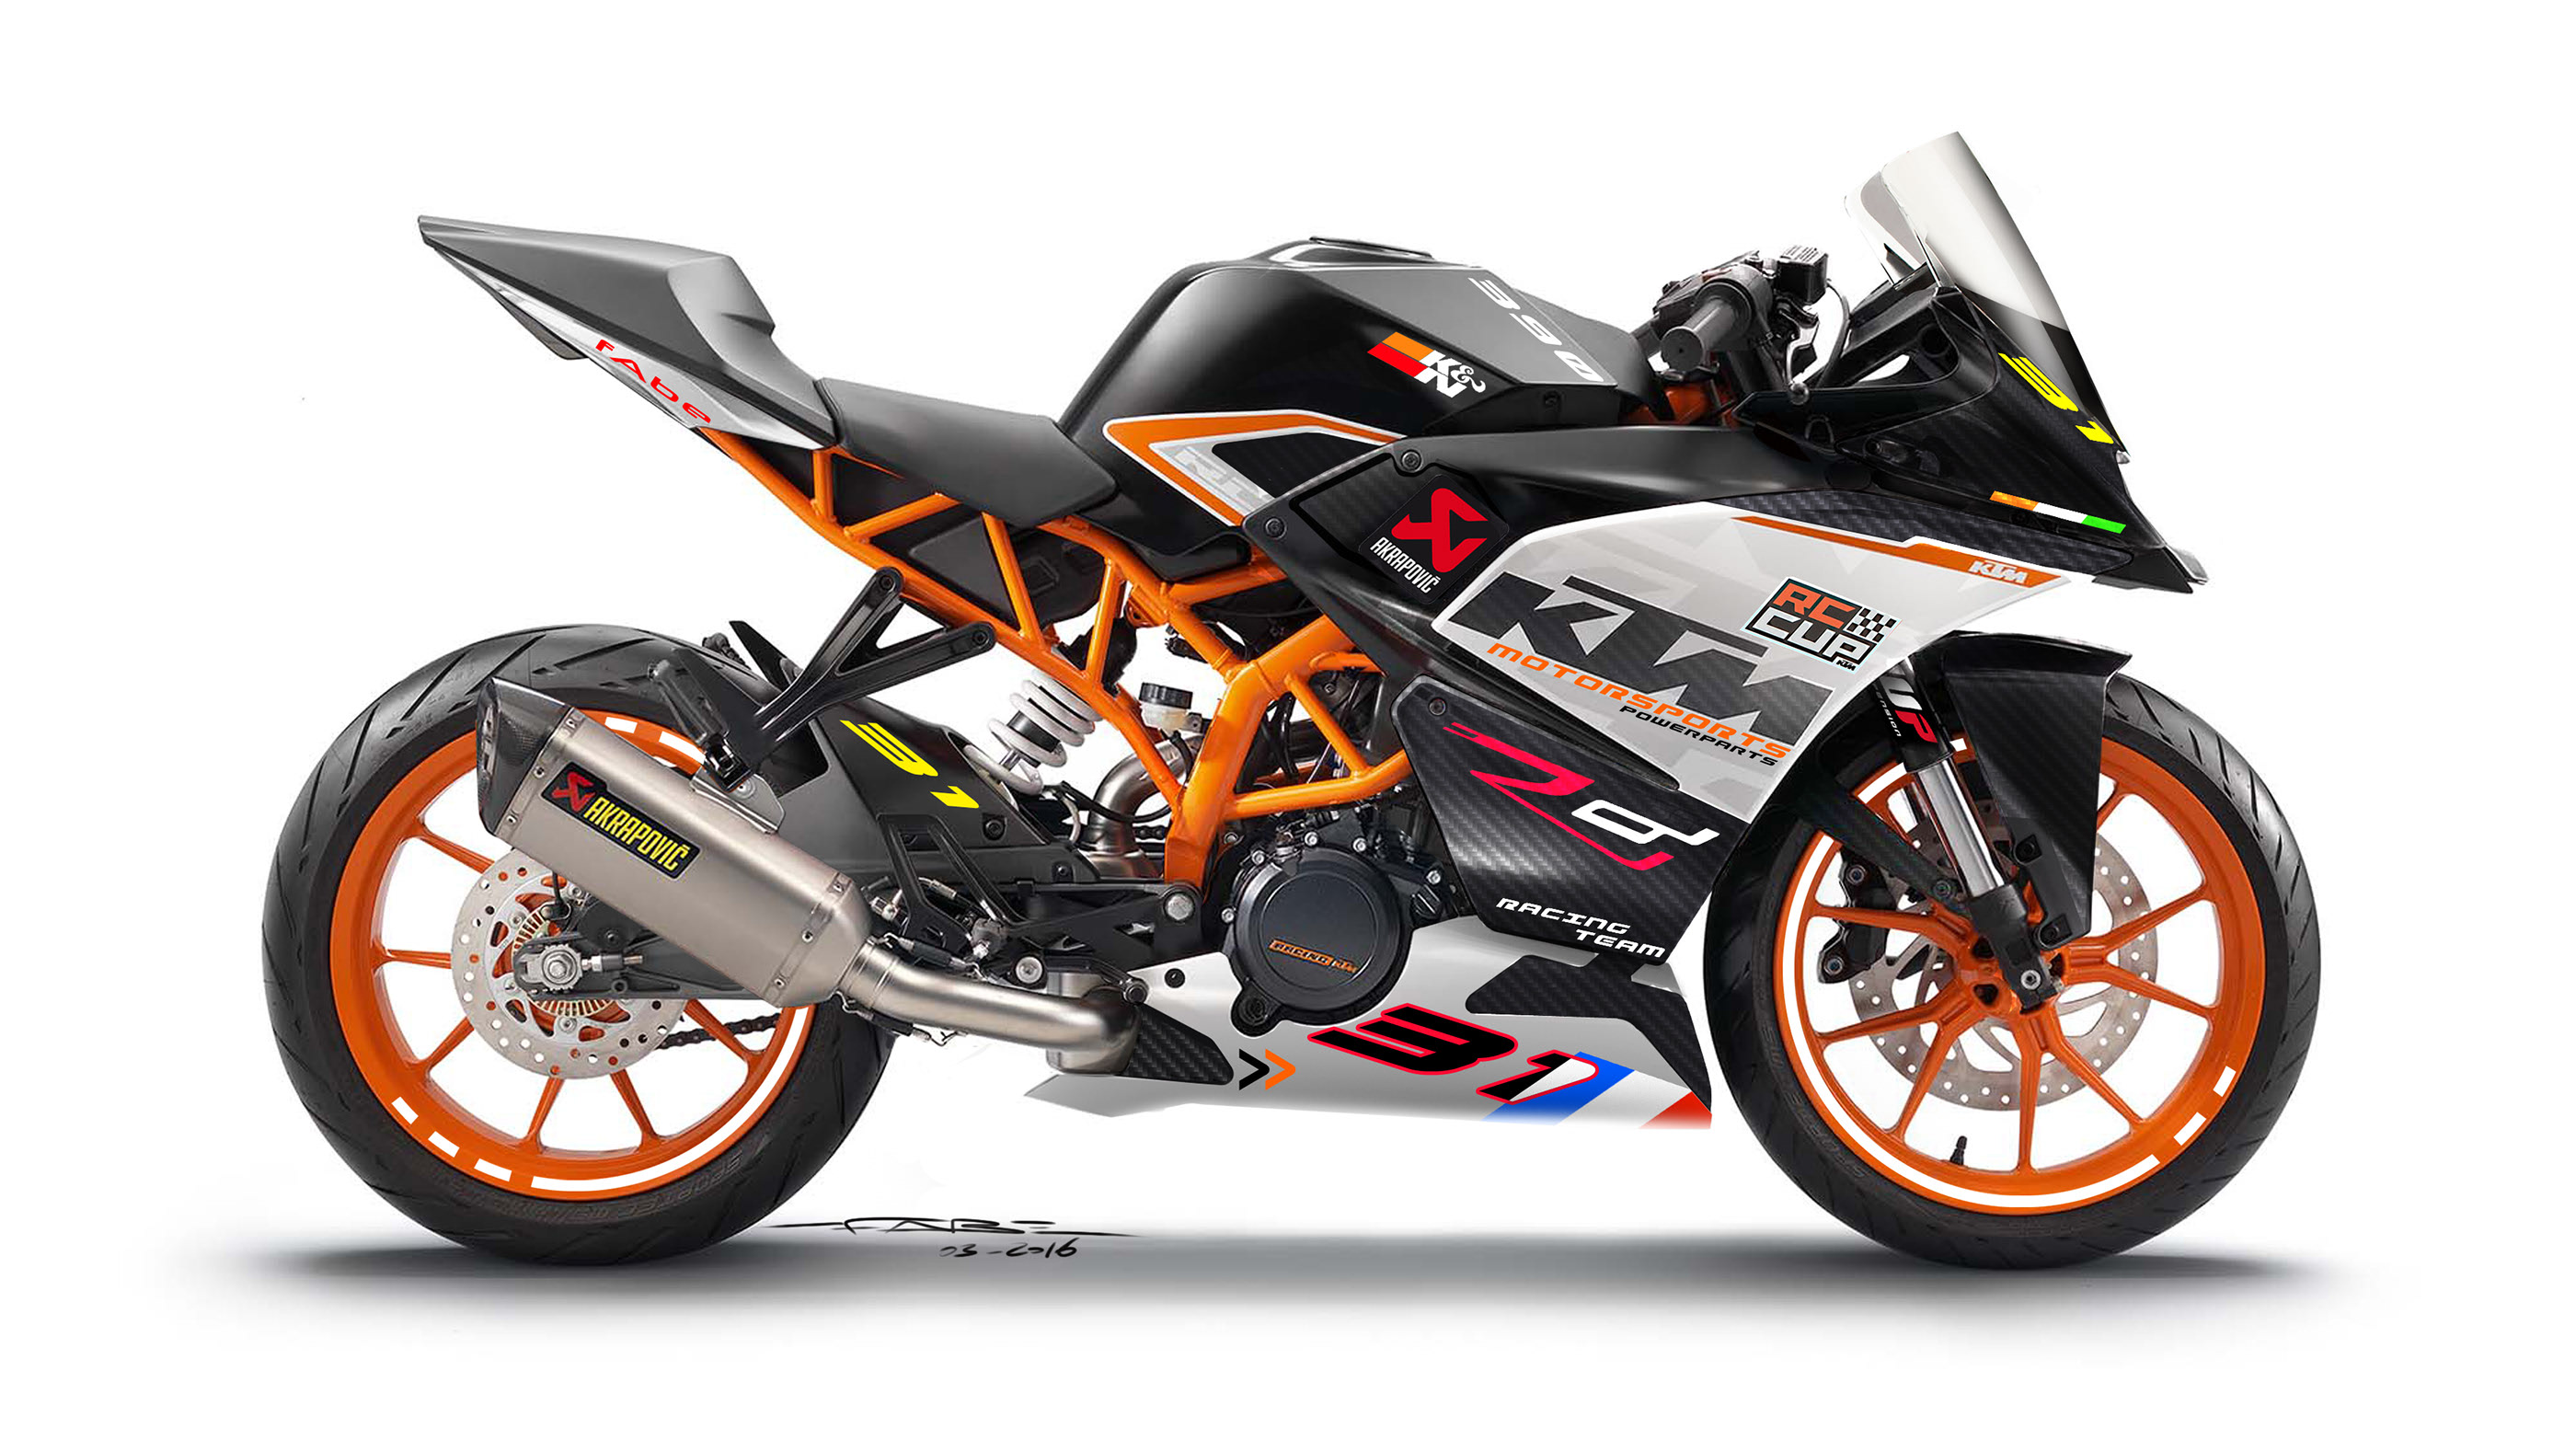 Ktm Rc Cupspeciale On Behance